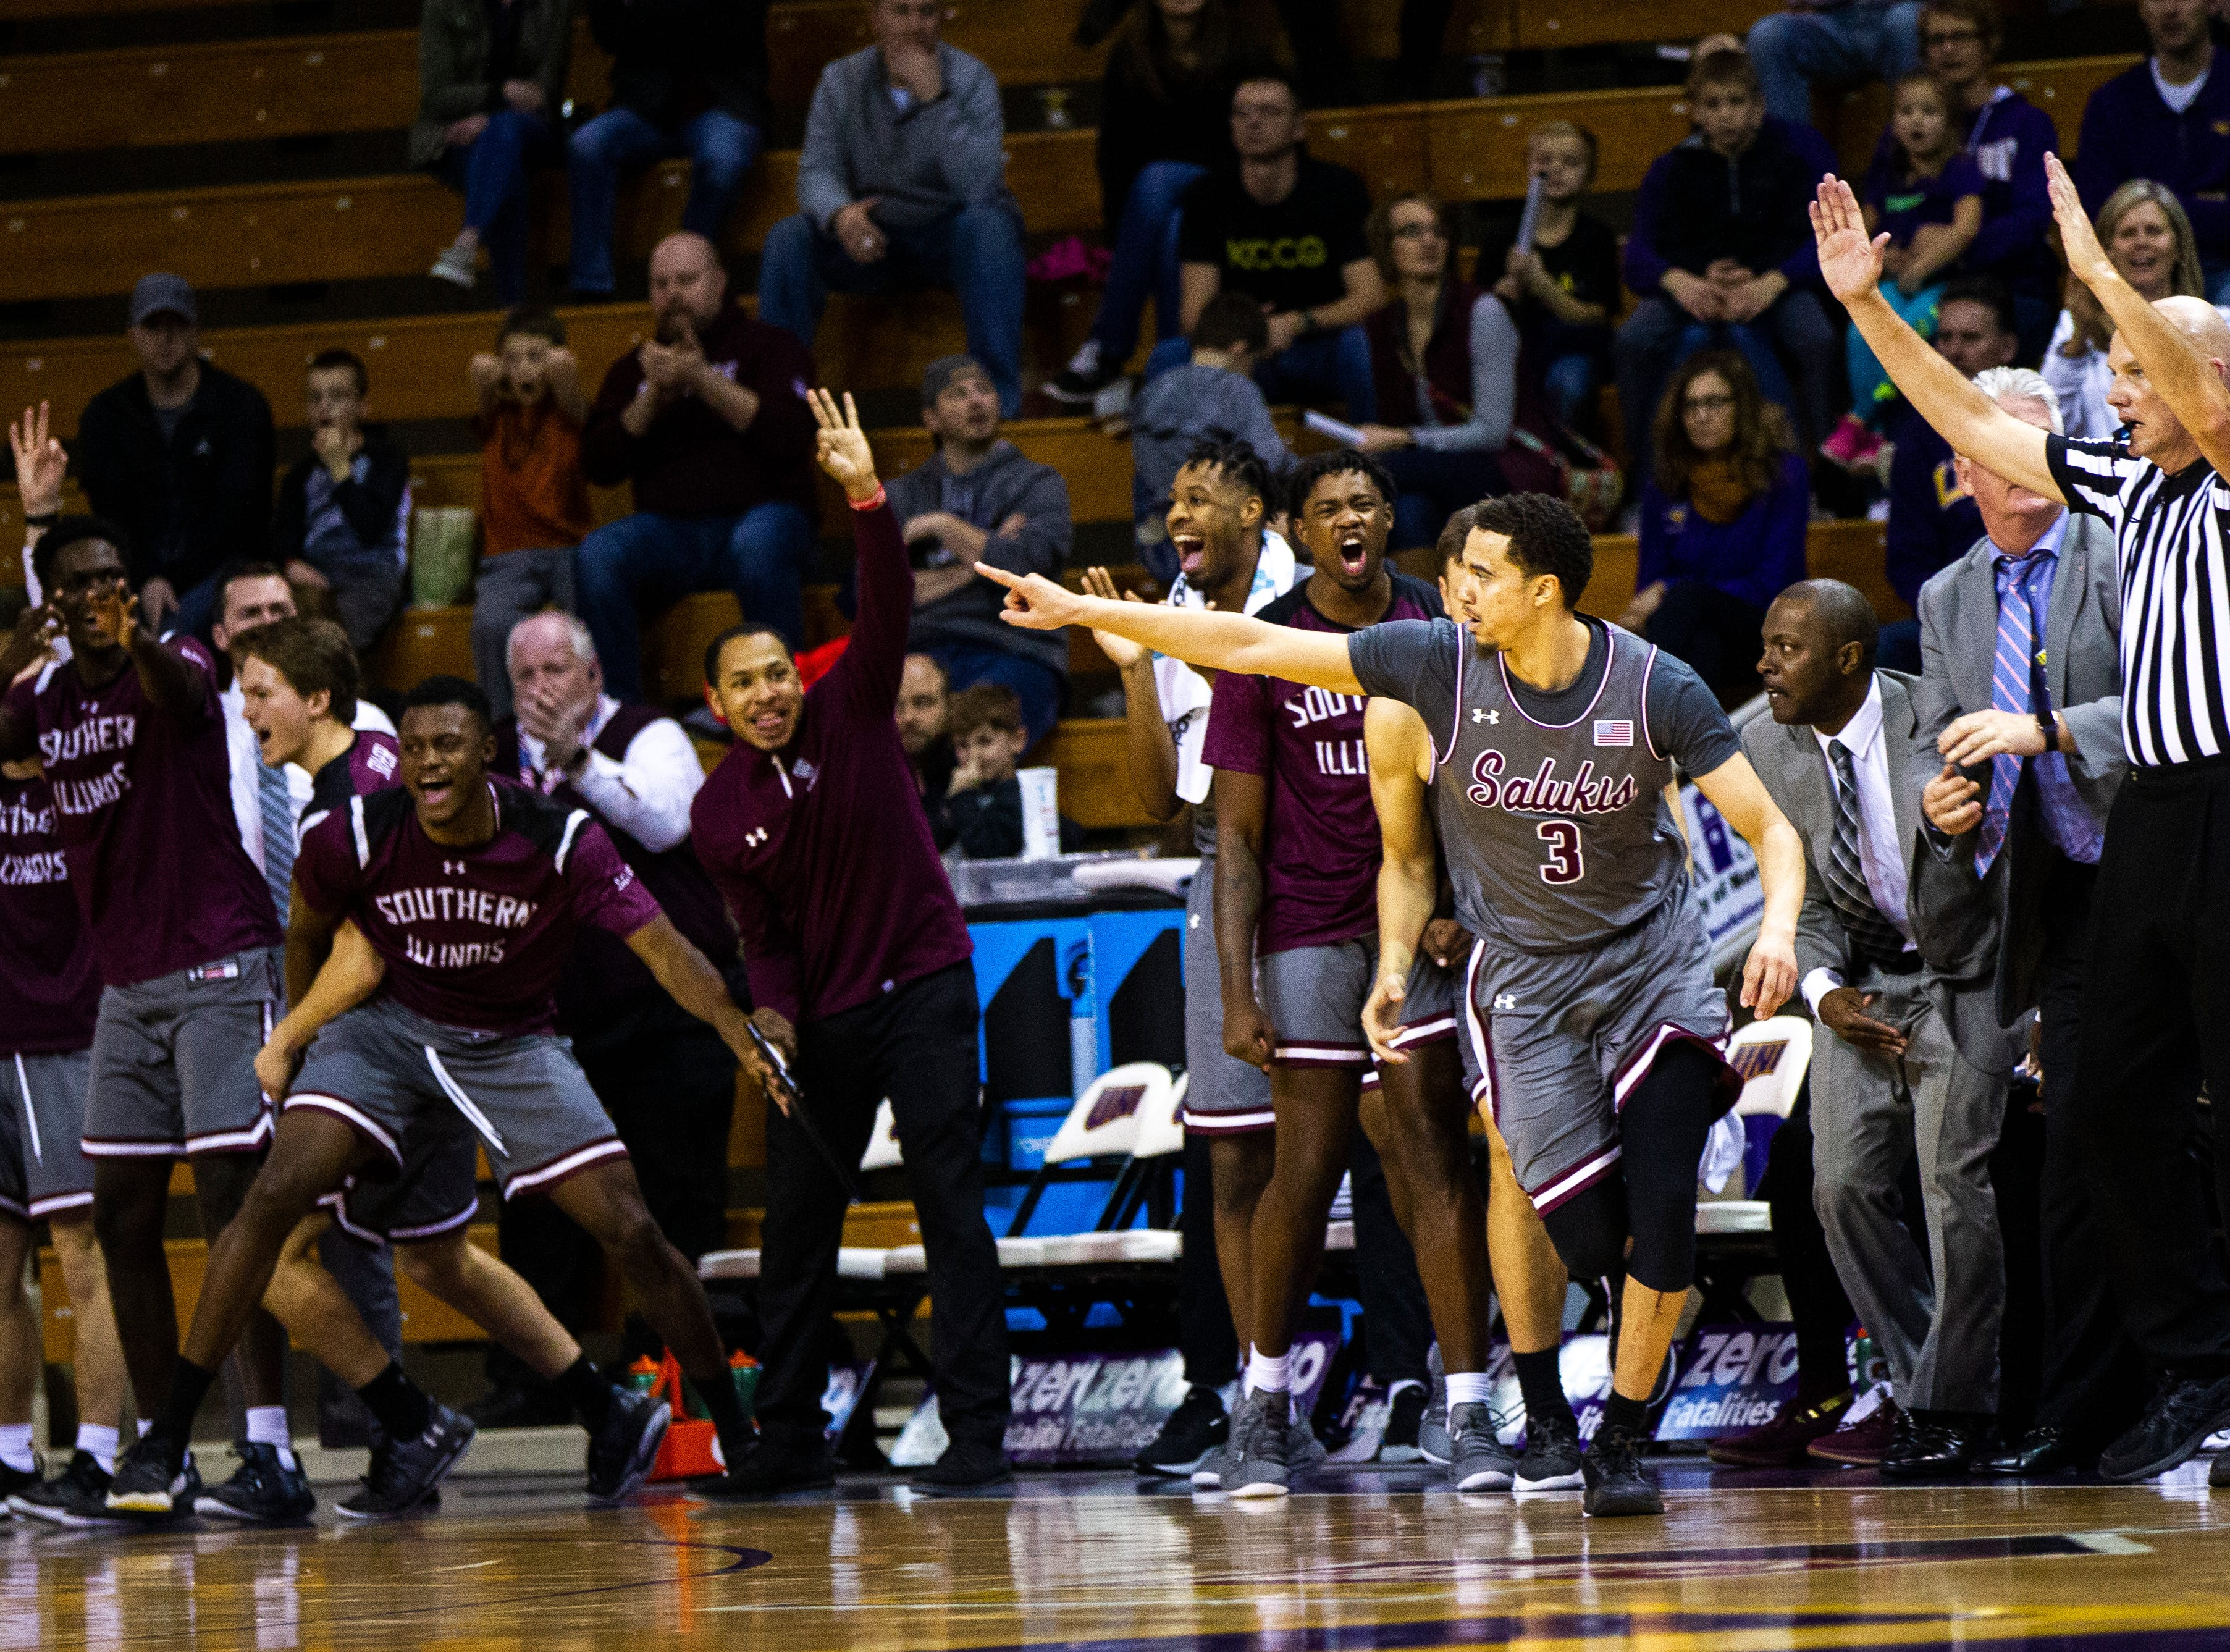 Southern Illinois guard Marcus Bartley (3) celebrates in front of his bench after making a 3-point basket during a NCAA Missouri Valley Conference men's basketball game on Saturday, Jan. 5, 2019, at the McLeod Center in Cedar Falls, Iowa.